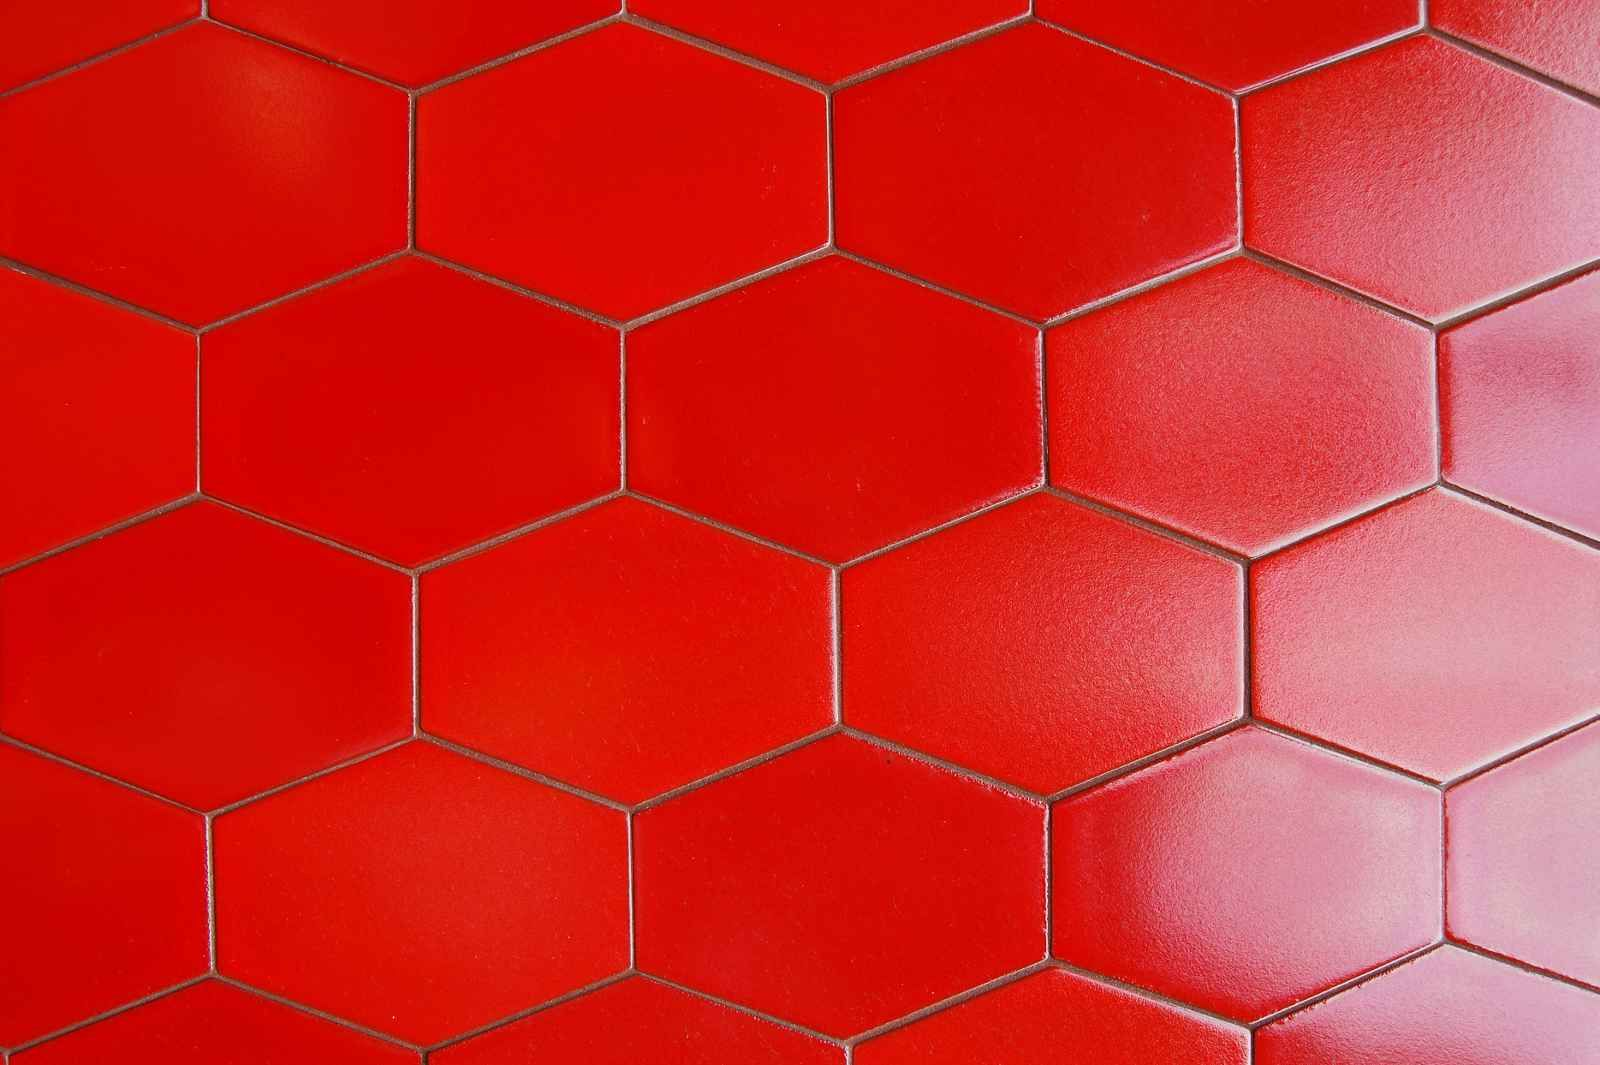 Red ceramic floor tiles for home floors pinterest ceramic red ceramic floor tiles for home dailygadgetfo Choice Image